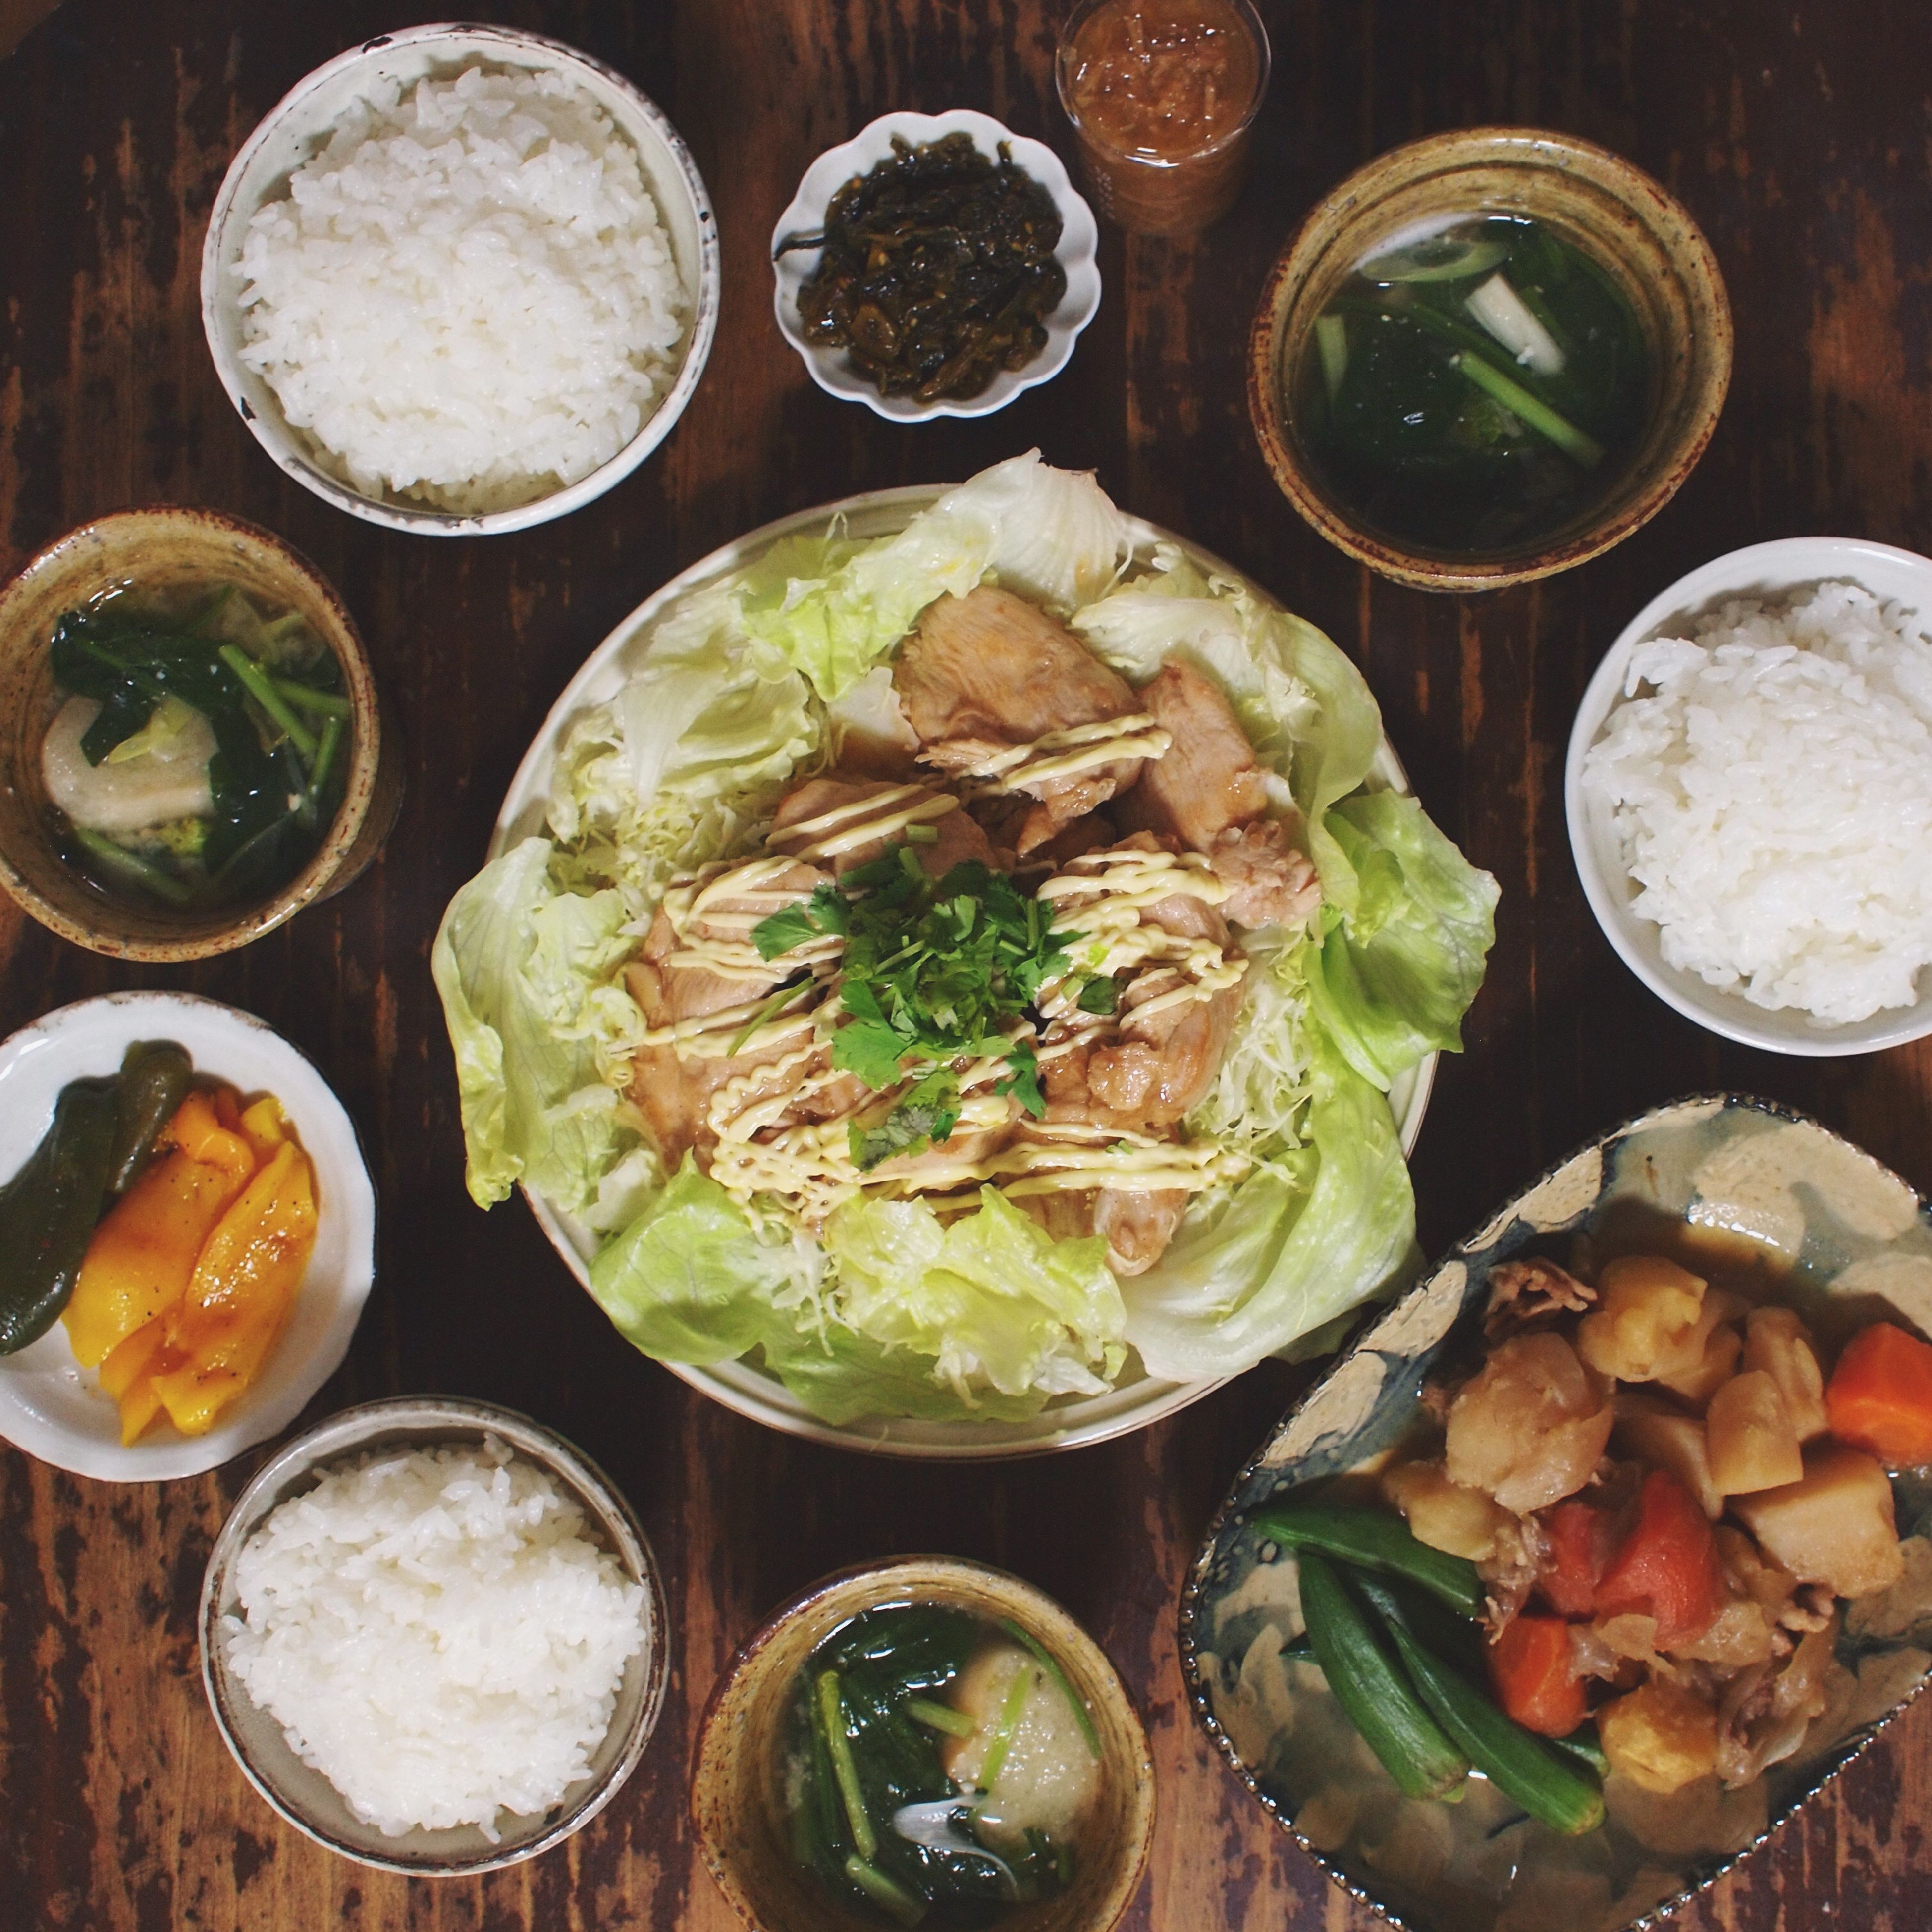 food and drink, food, ready-to-eat, indoors, freshness, plate, table, still life, healthy eating, bowl, meal, high angle view, serving size, meat, vegetable, served, indulgence, directly above, close-up, soup